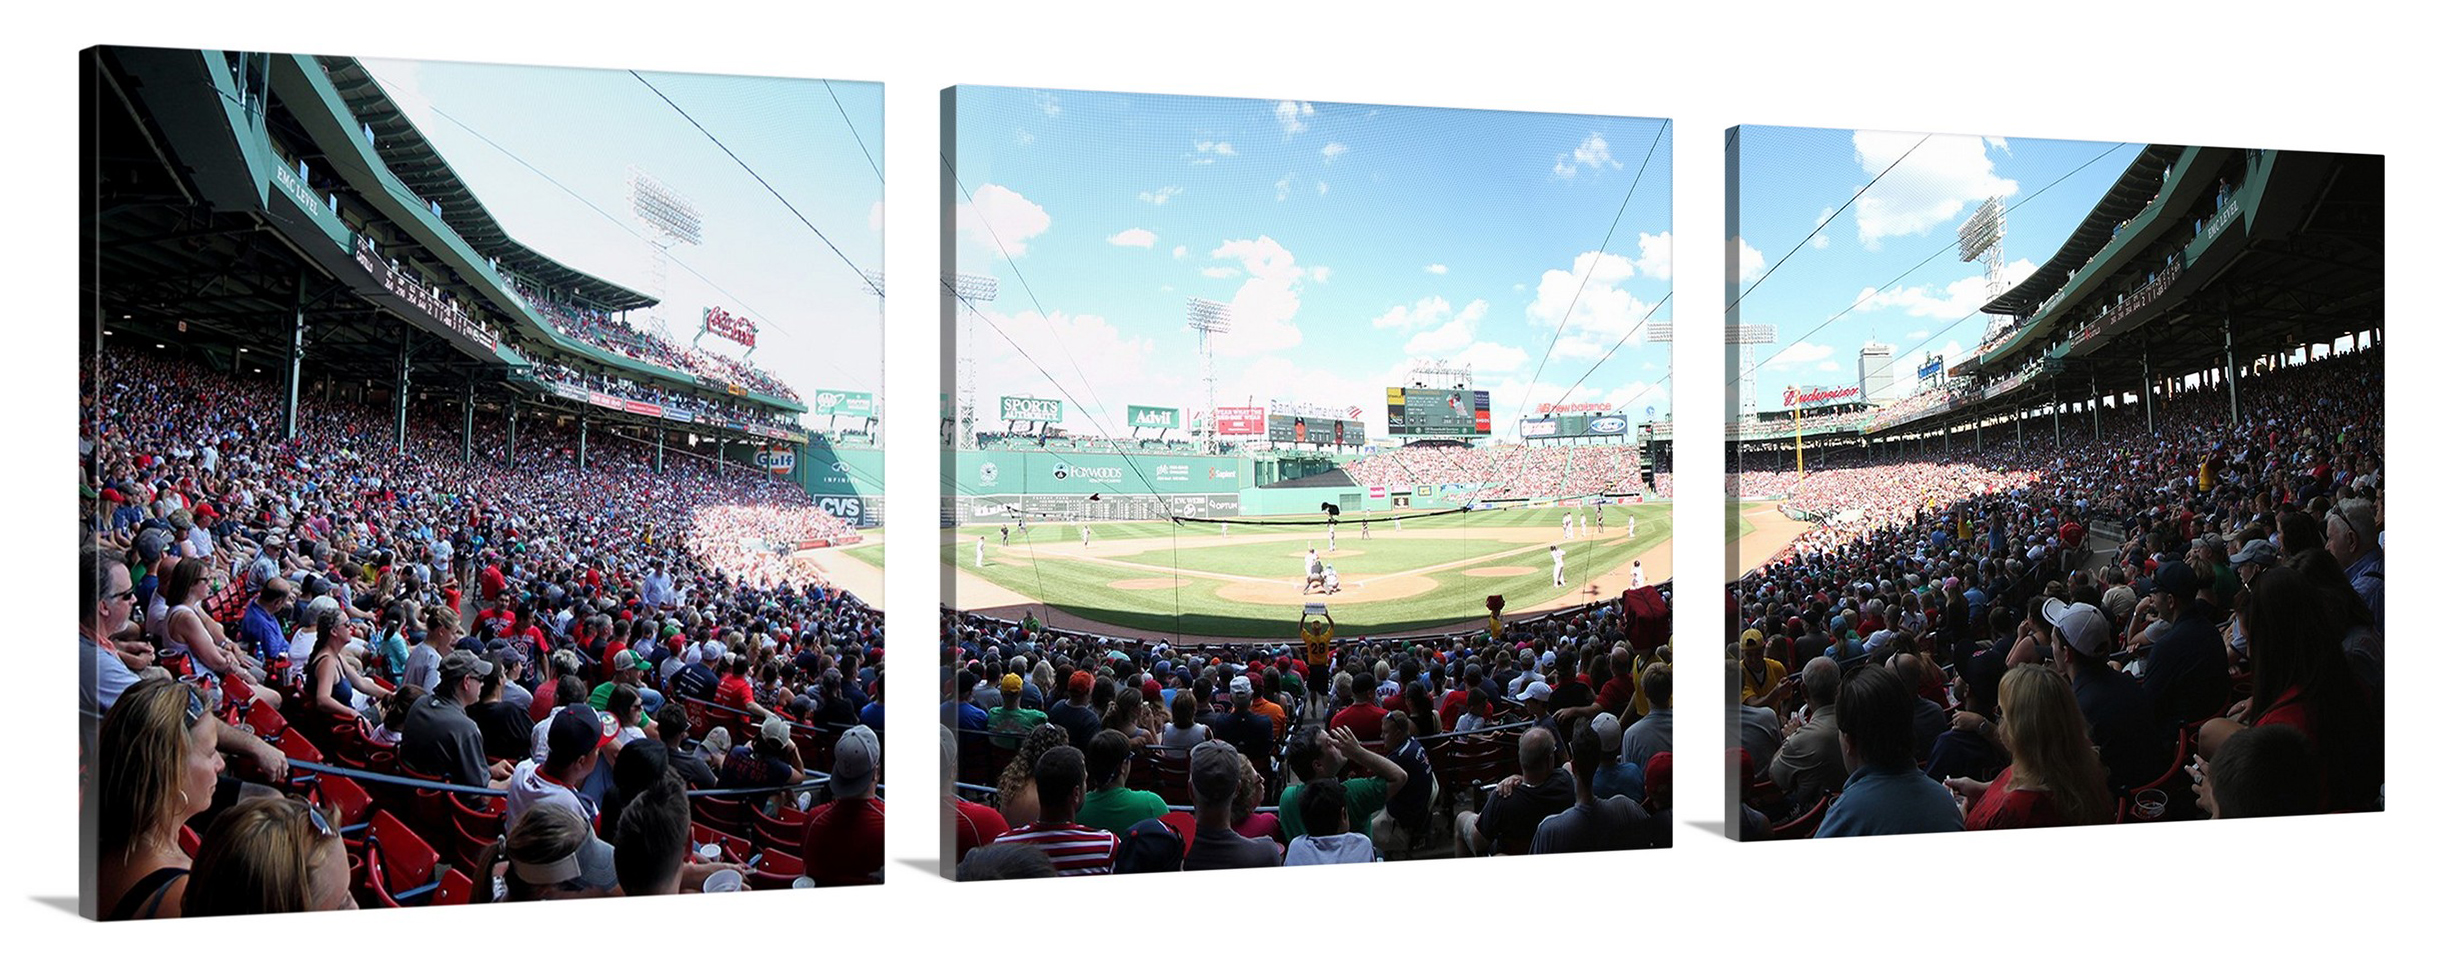 Fenway Park Panorama Boston Red Sox Home Plate During Game